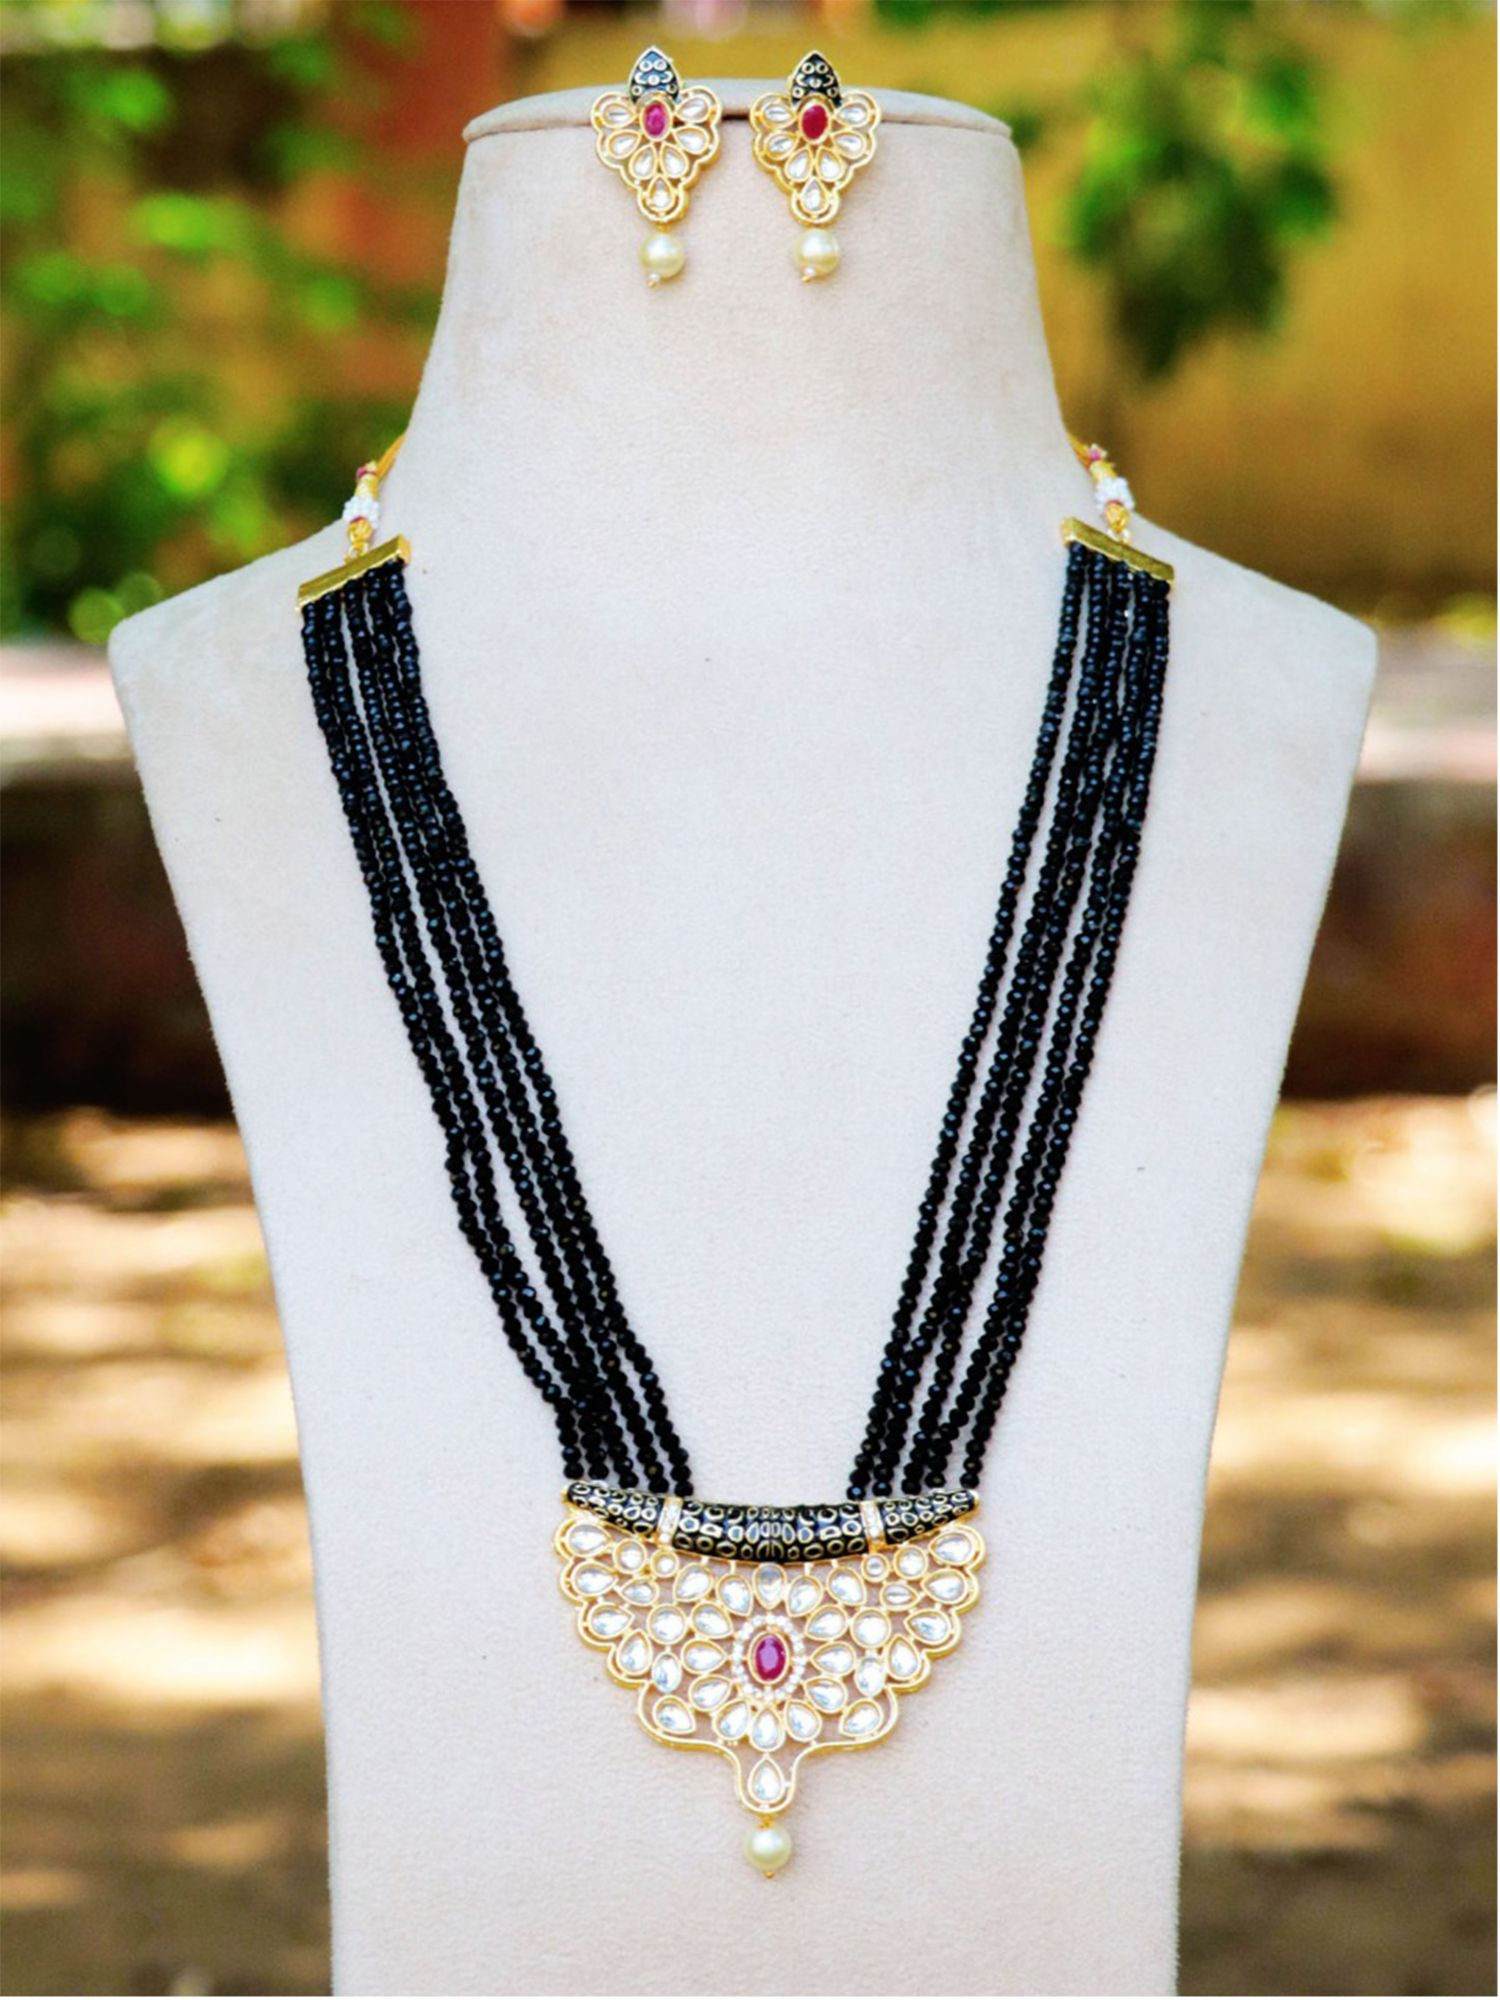 Extremely Kundan meena long Jaipuri necklace set